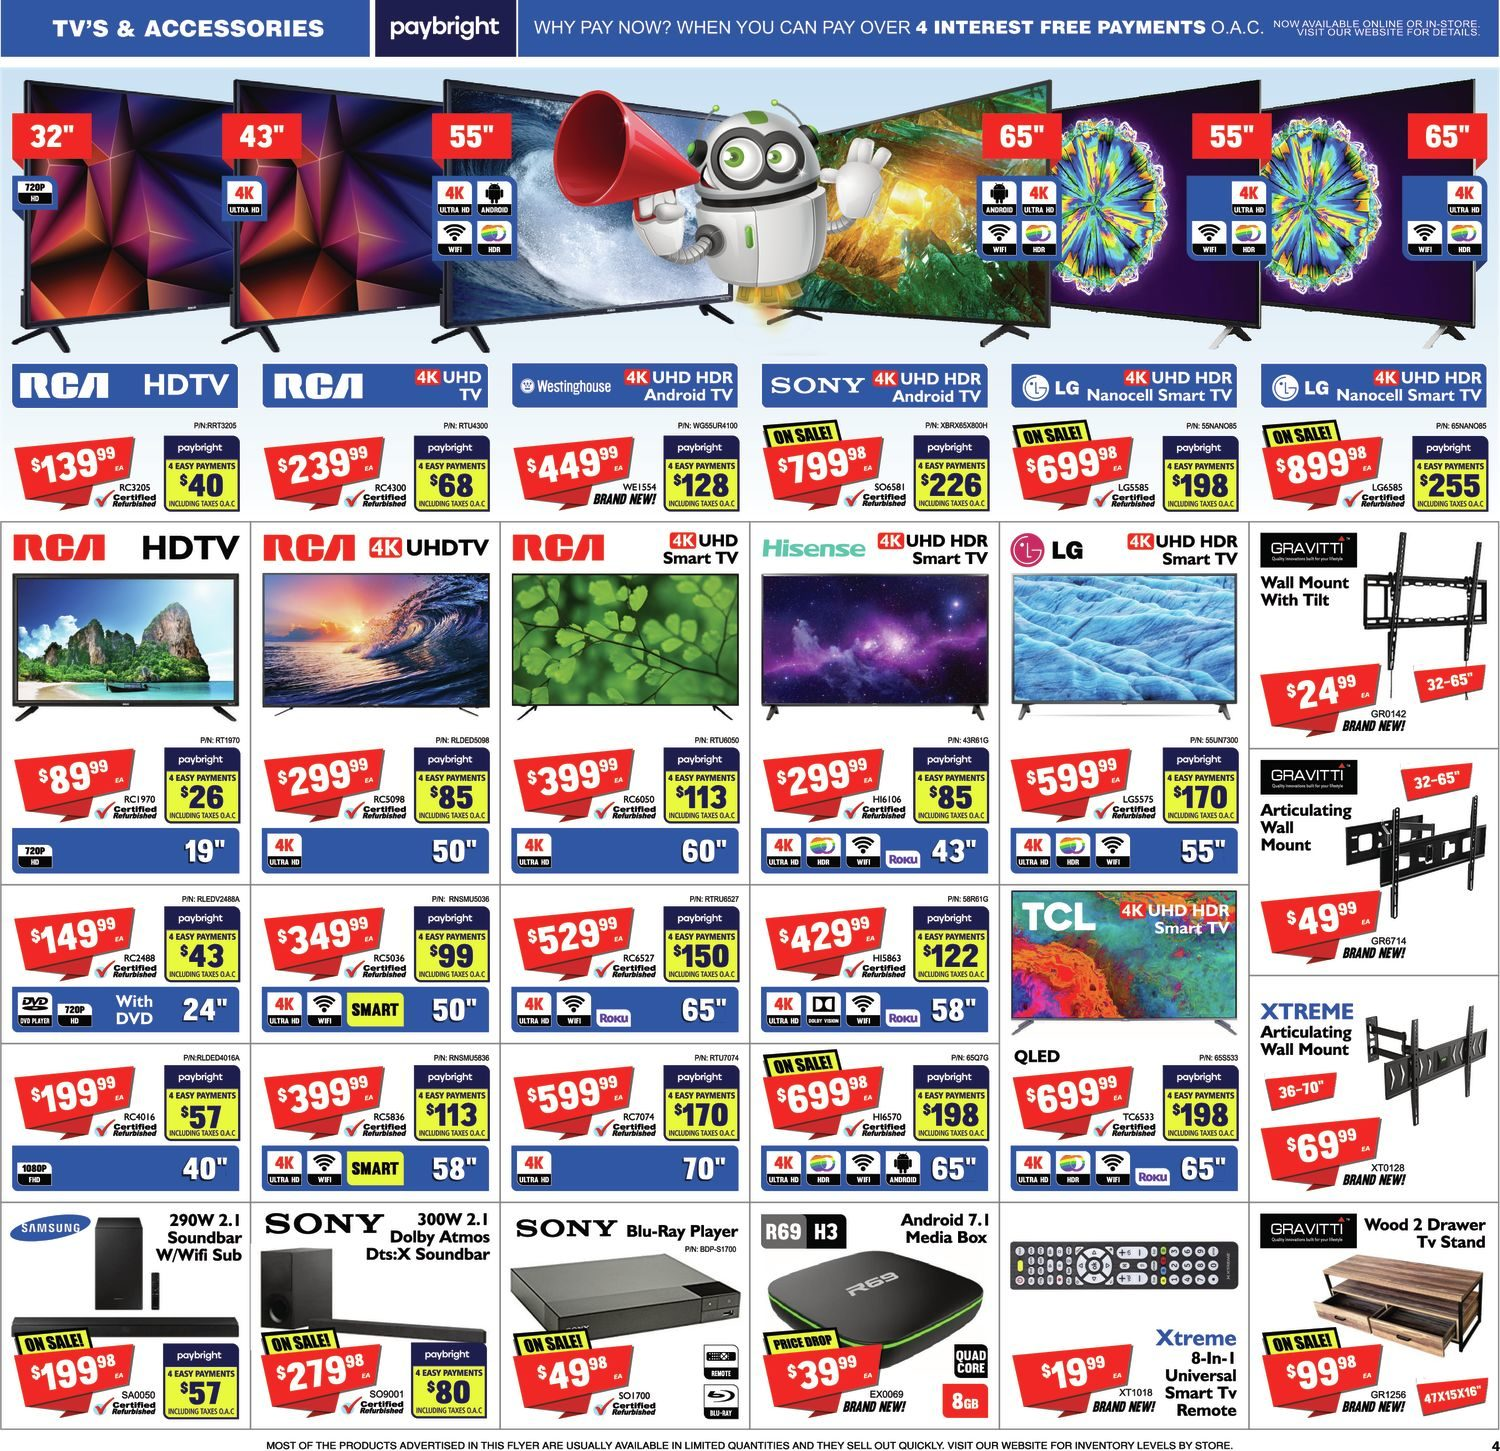 FactoryDirect - Massive Inventory Blowout! - Page 4